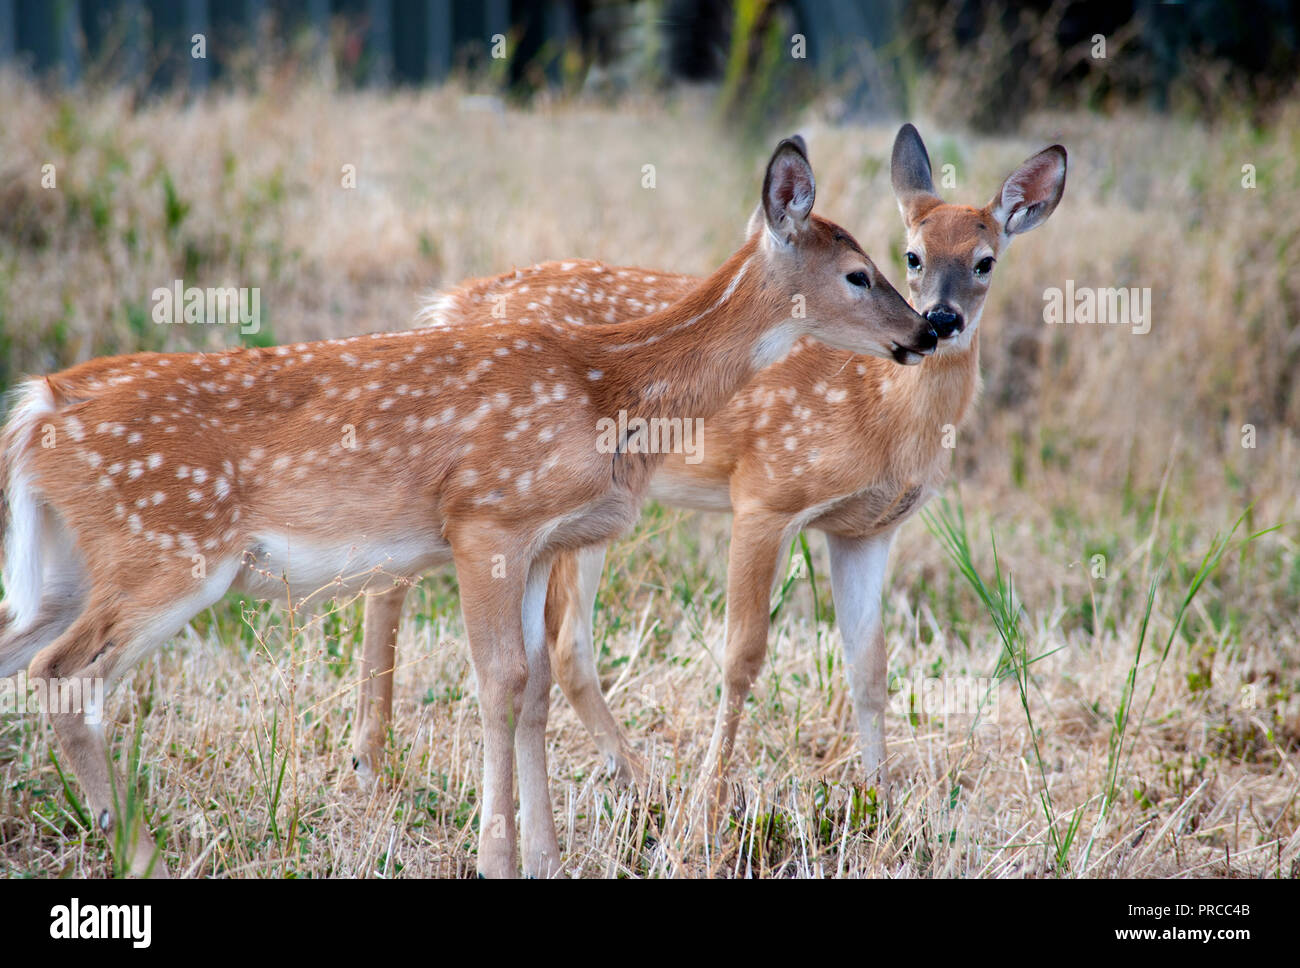 Young deer in the western wilderness in Montana, USA - Stock Image